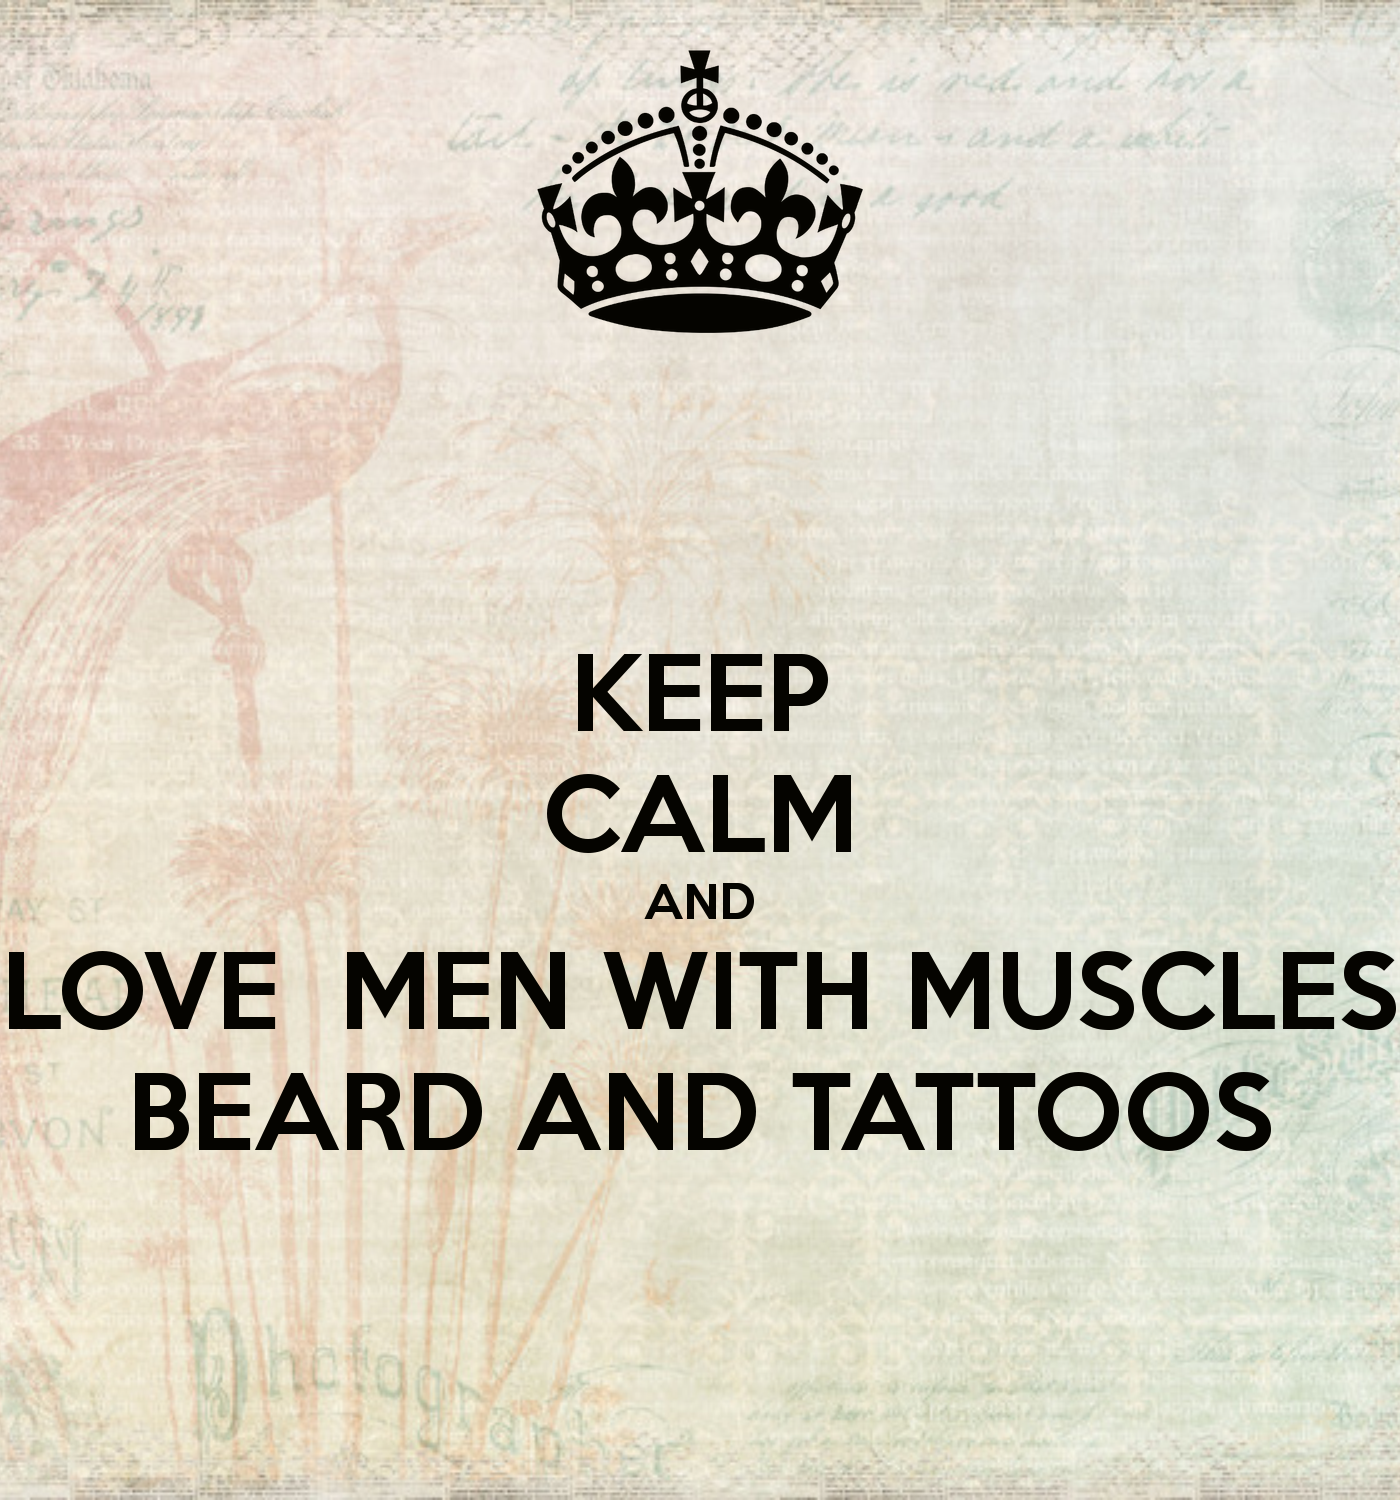 10 Love Quote Tattoos For Men Images And Pictures: KEEP CALM AND LOVE MEN WITH MUSCLES BEARD AND TATTOOS